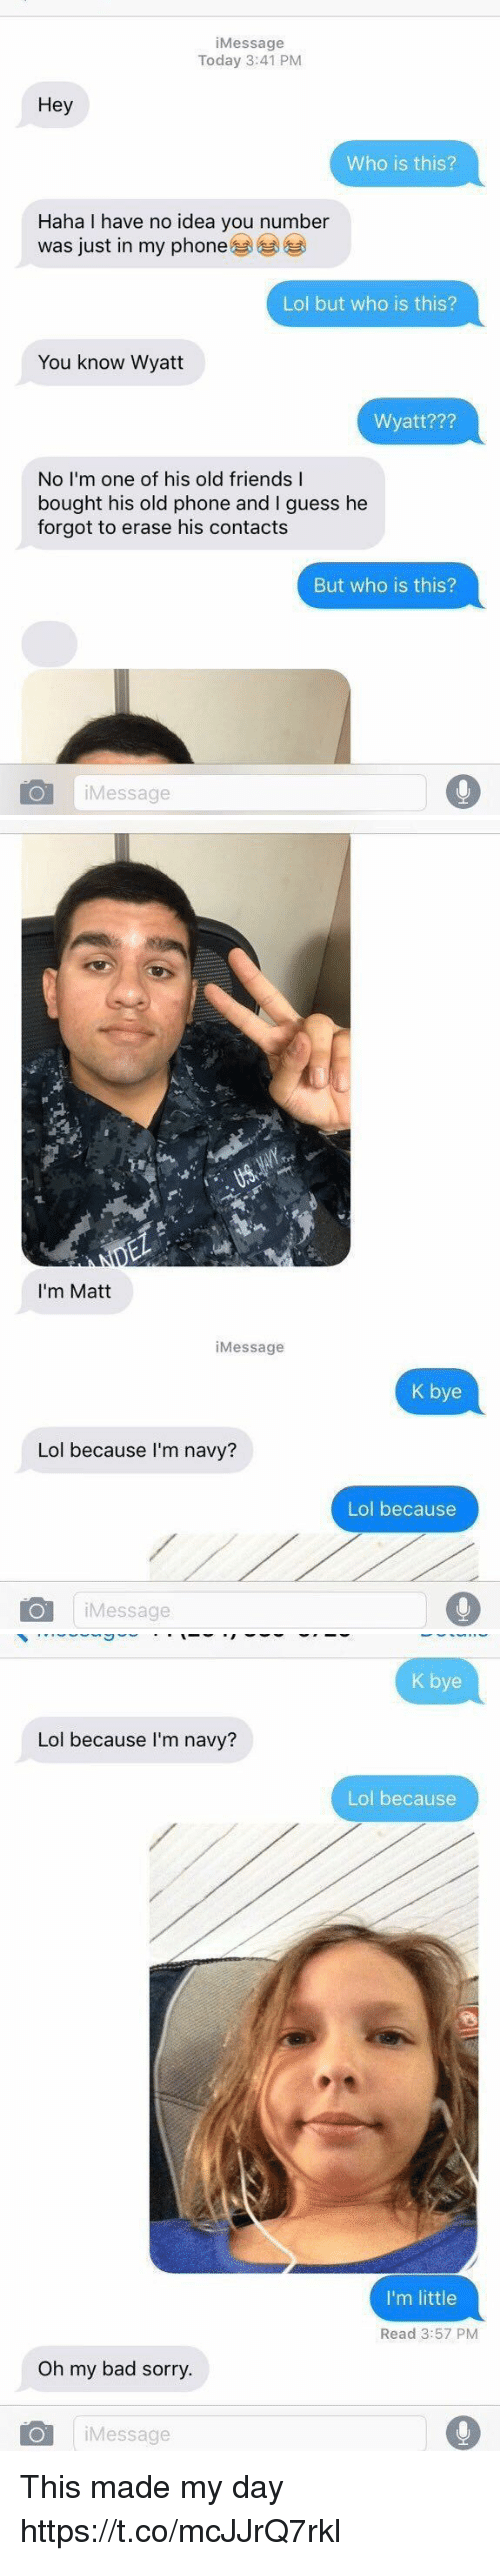 Bad, Friends, and Lol: iMessage  Today 3:41 PM  Hey  Who is this?  Haha I have no idea you number  was just in my phone  Lol but who is this?  You know Wyatt  Wyatt???  No I'm one of his old friends I  bought his old phone and I guess he  forgot to erase his contacts  But who is this?  iMessage   I'm Matt  iMessage  K bye  Lol because I'm navy?  Lol because  iMessage   K bye  Lol because I'm navy?  Lol because  I'm little  Read 3:57 PM  Oh my bad sorry.  iMessage This made my day https://t.co/mcJJrQ7rkl